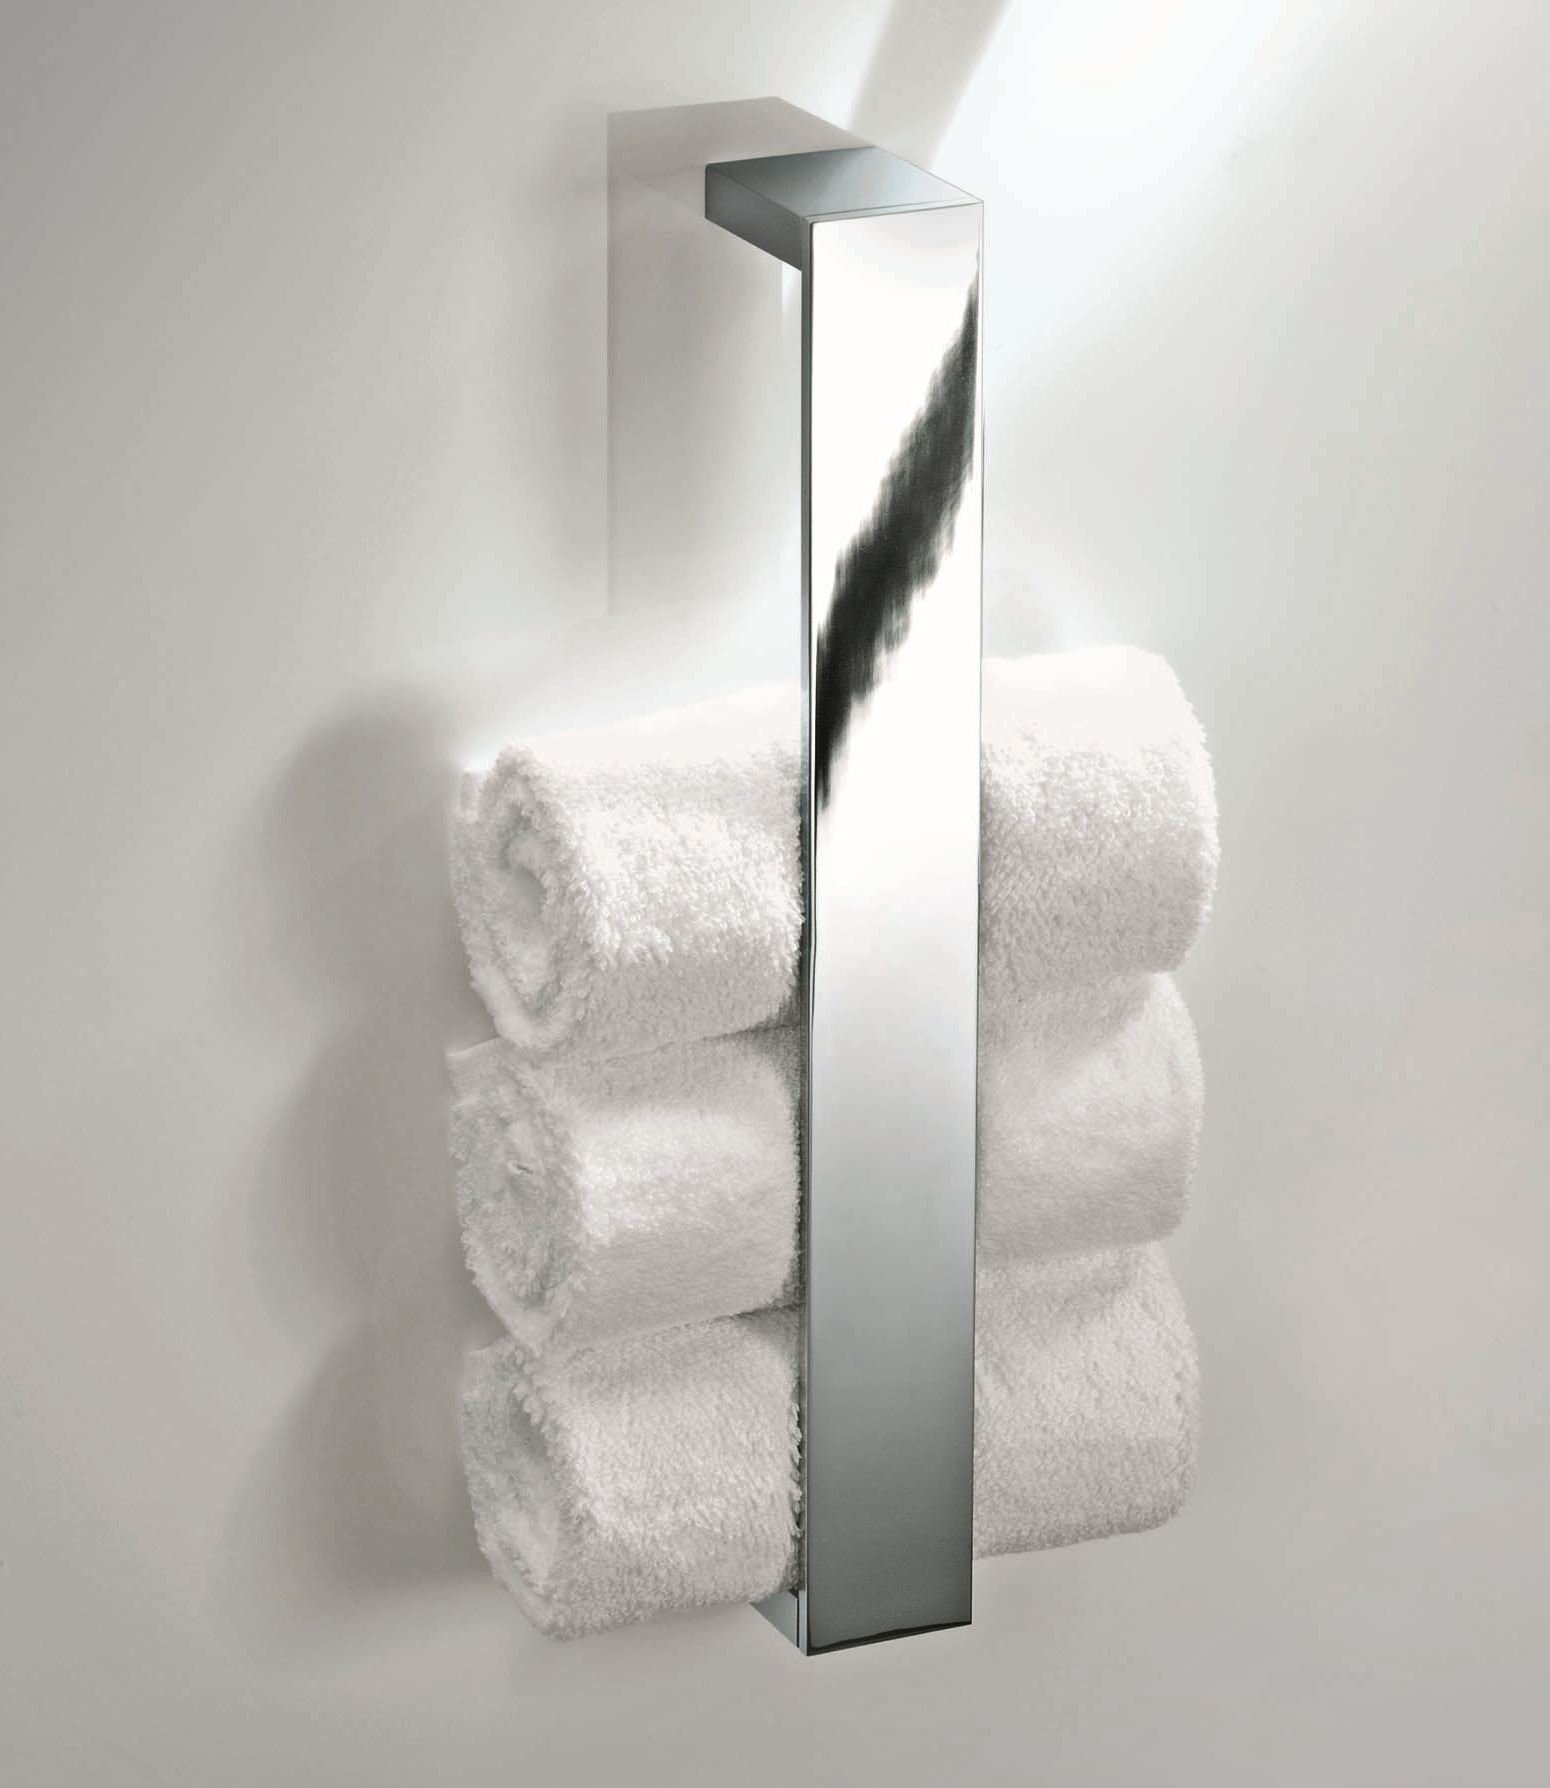 Towel rack bk hte41 by decor walther for Porte serviette mural